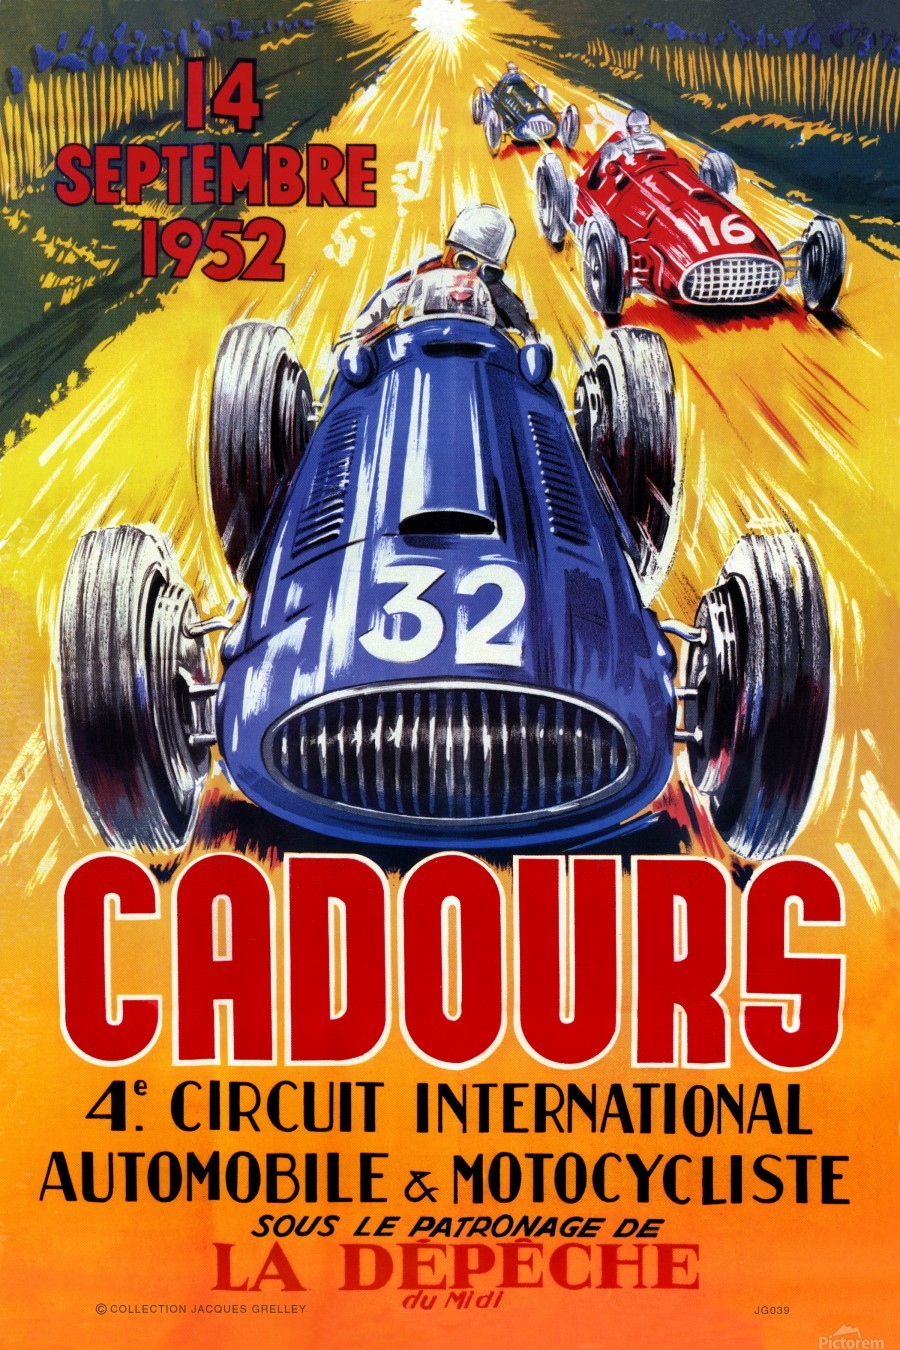 Cadours 4th Circut International 1952  Print